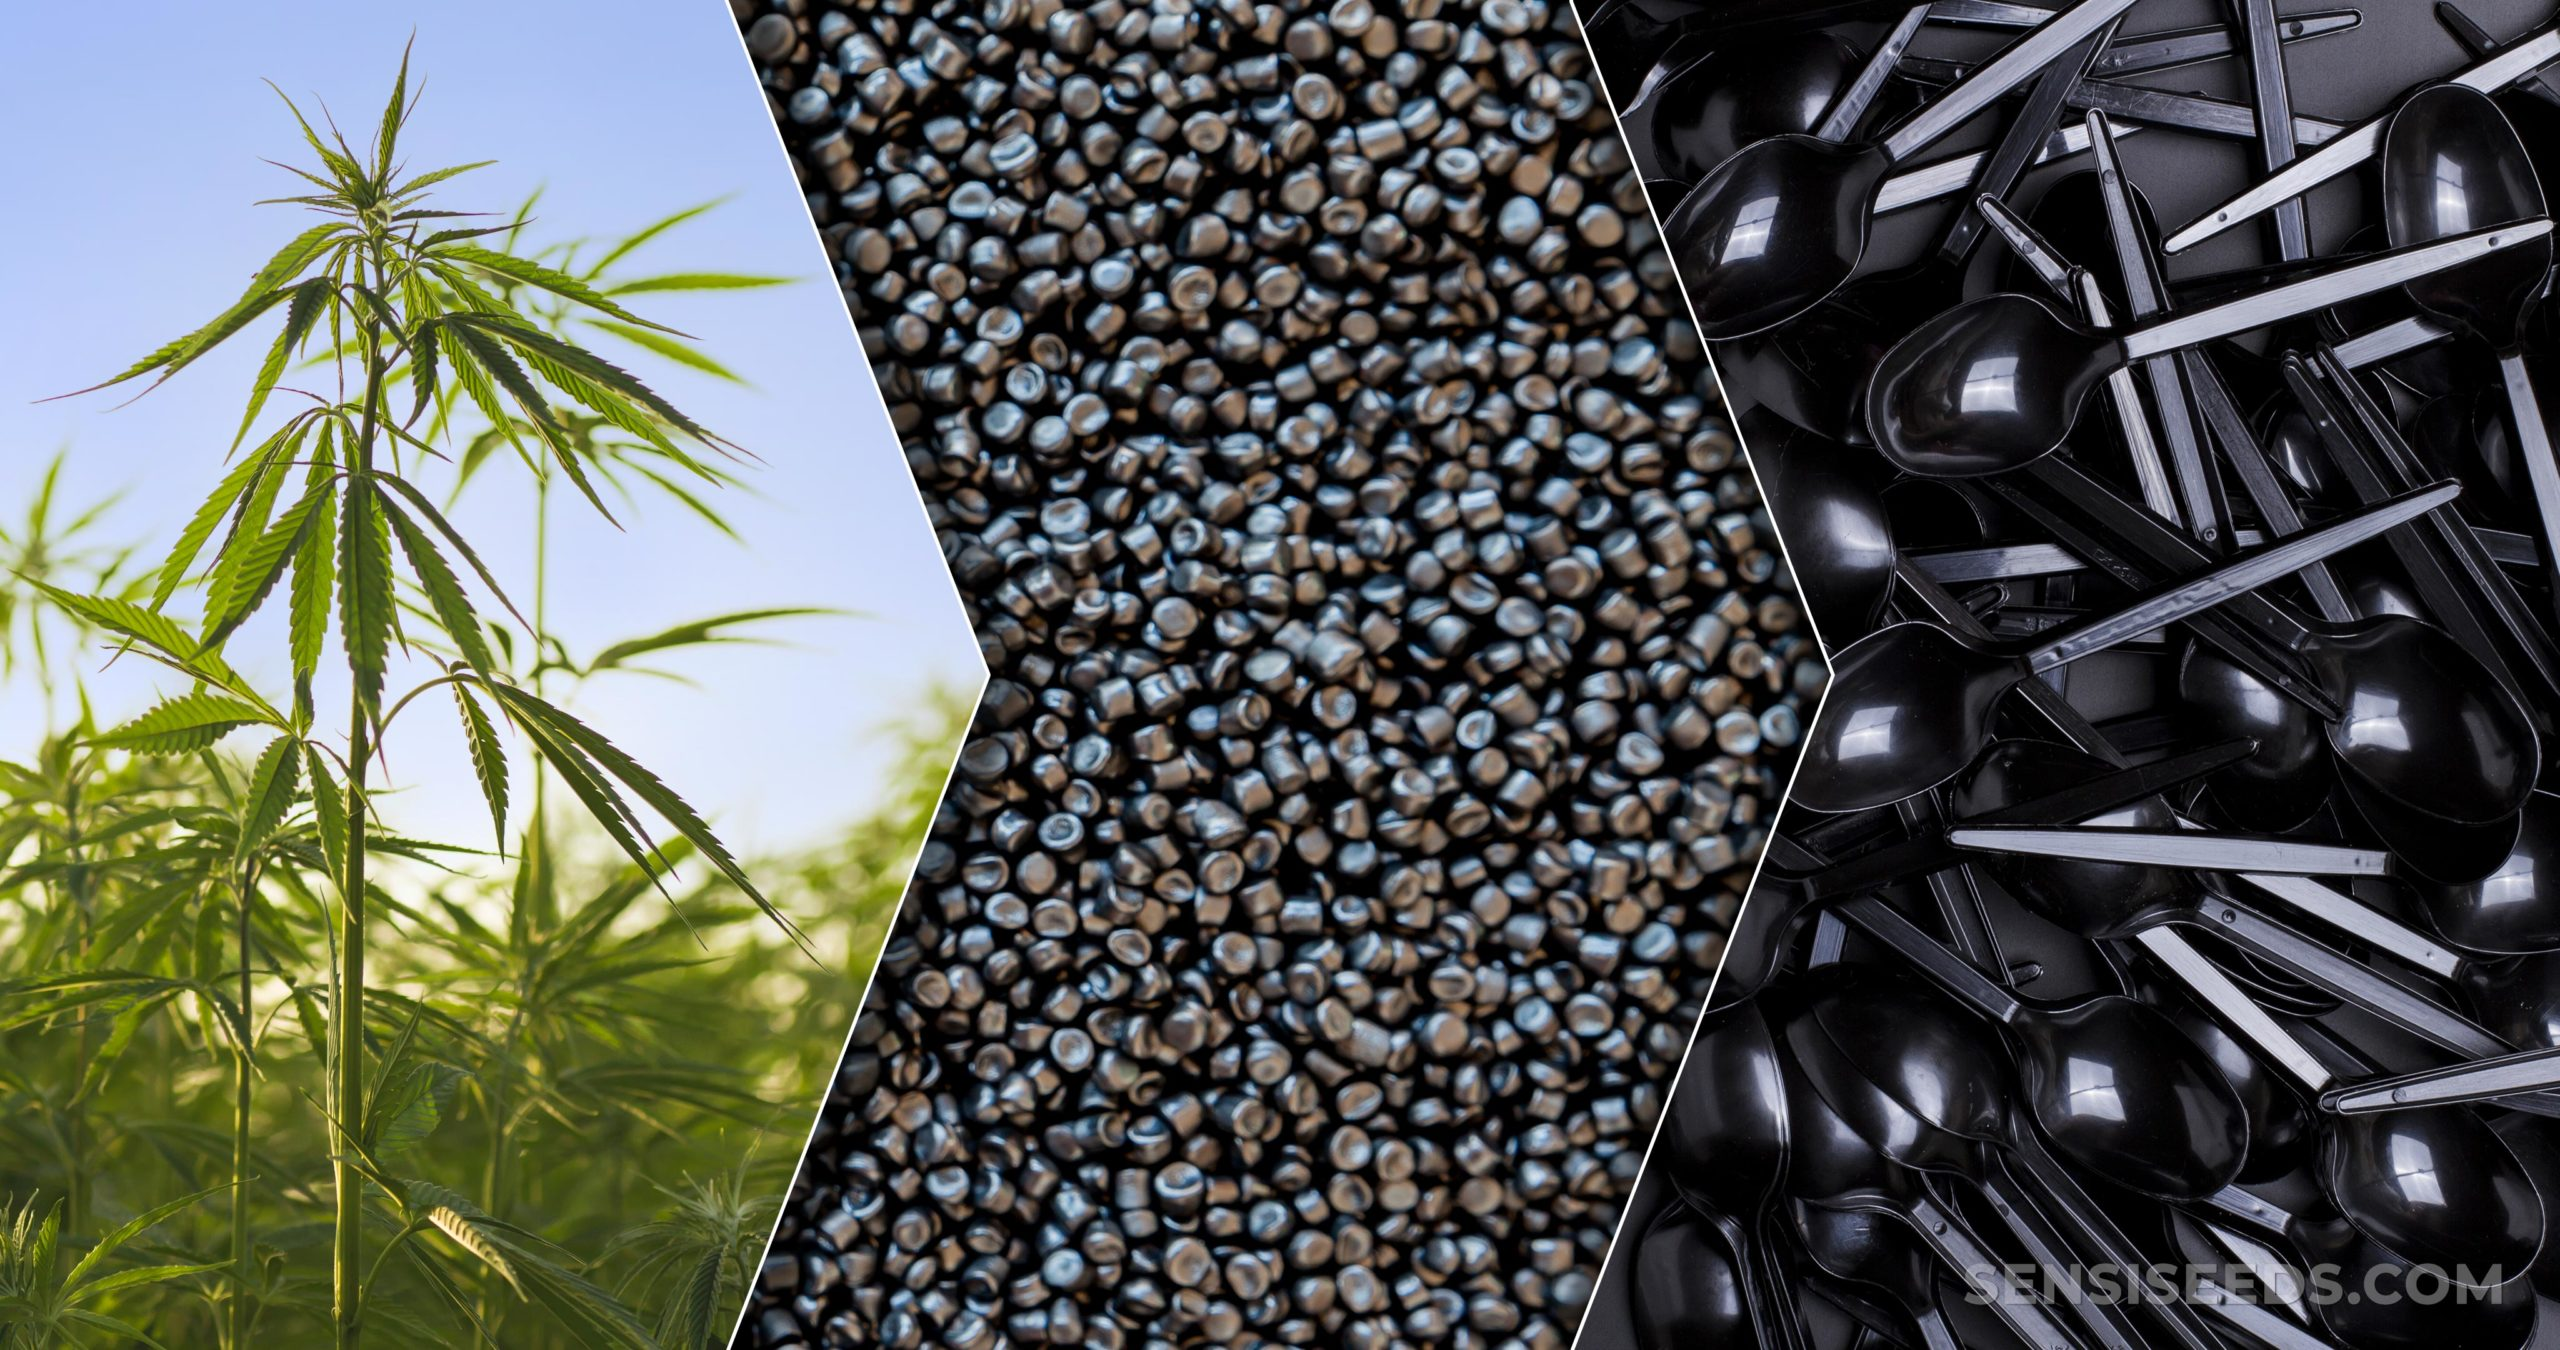 Hemp Plastic: What Is It and How is it Made? - Sensi Seeds